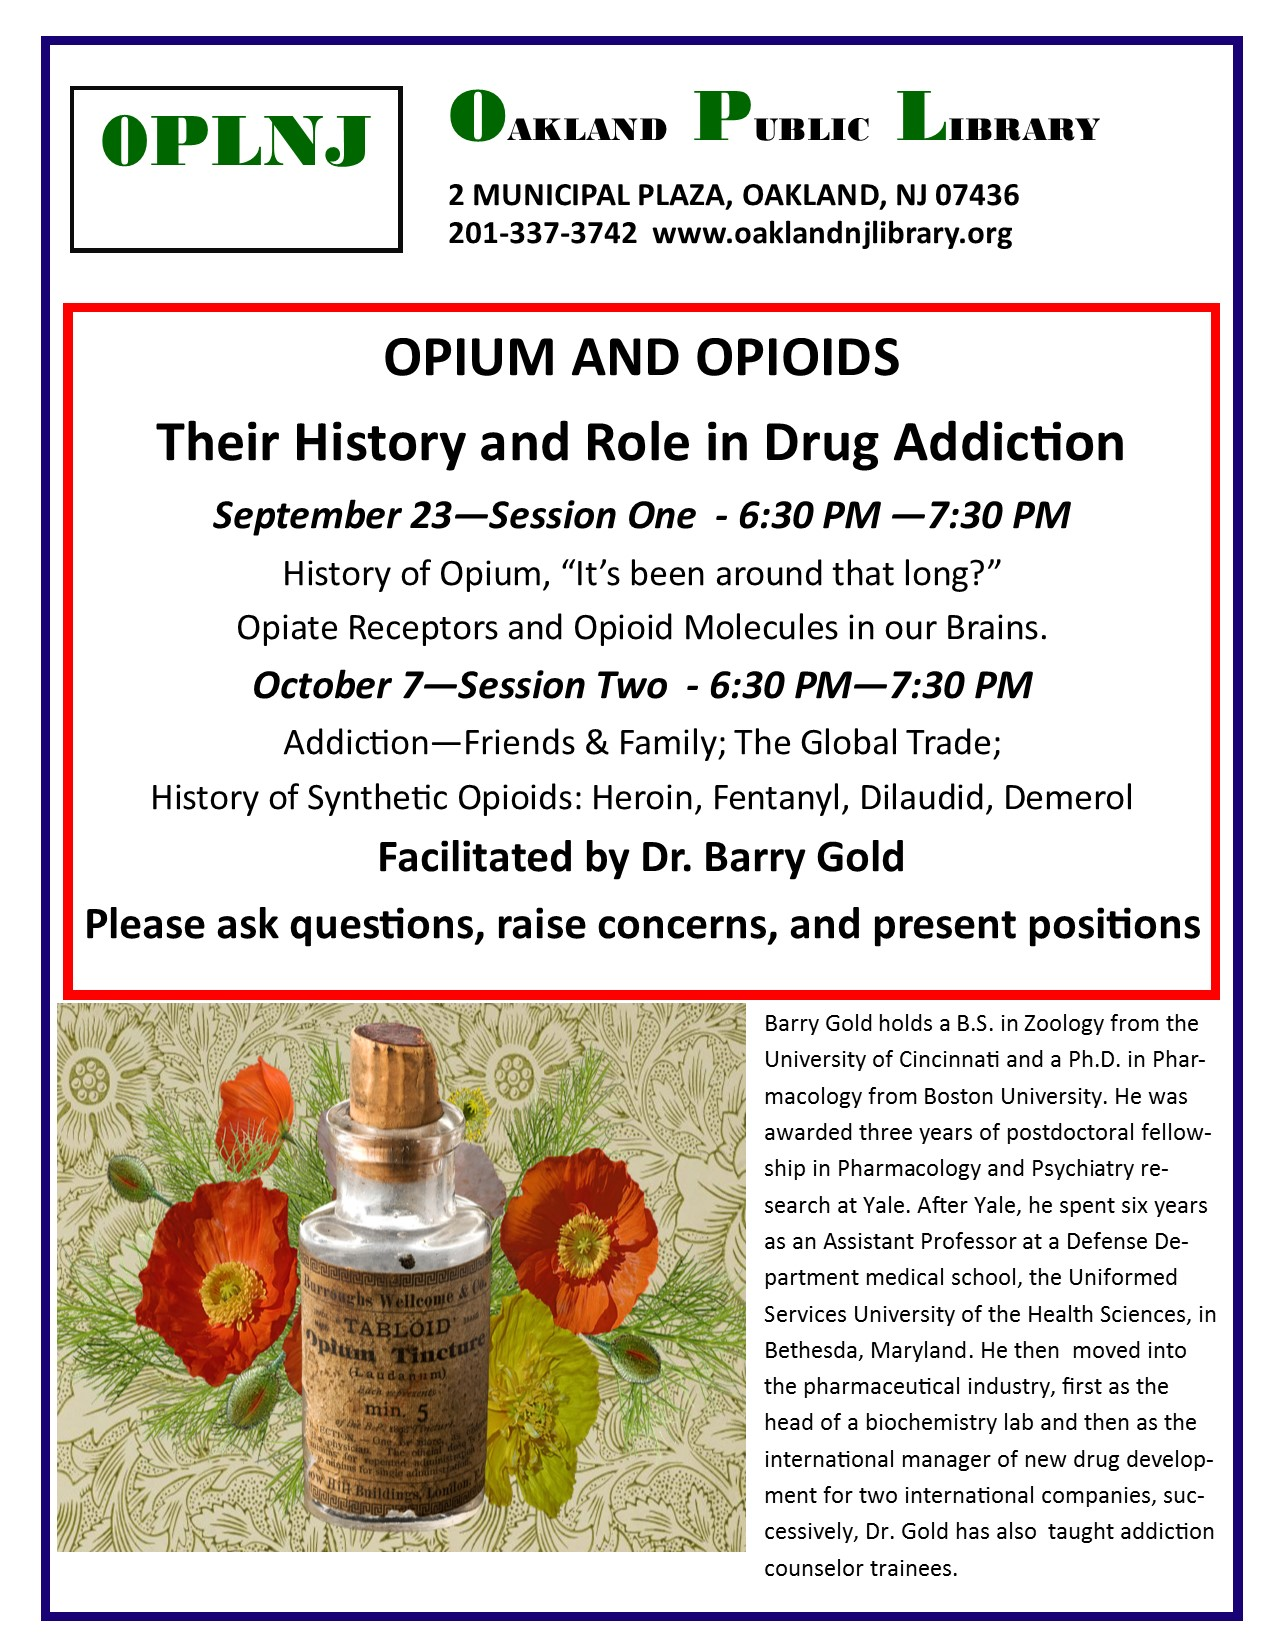 Opium and Opioids Their History and Role in Drug Addiction